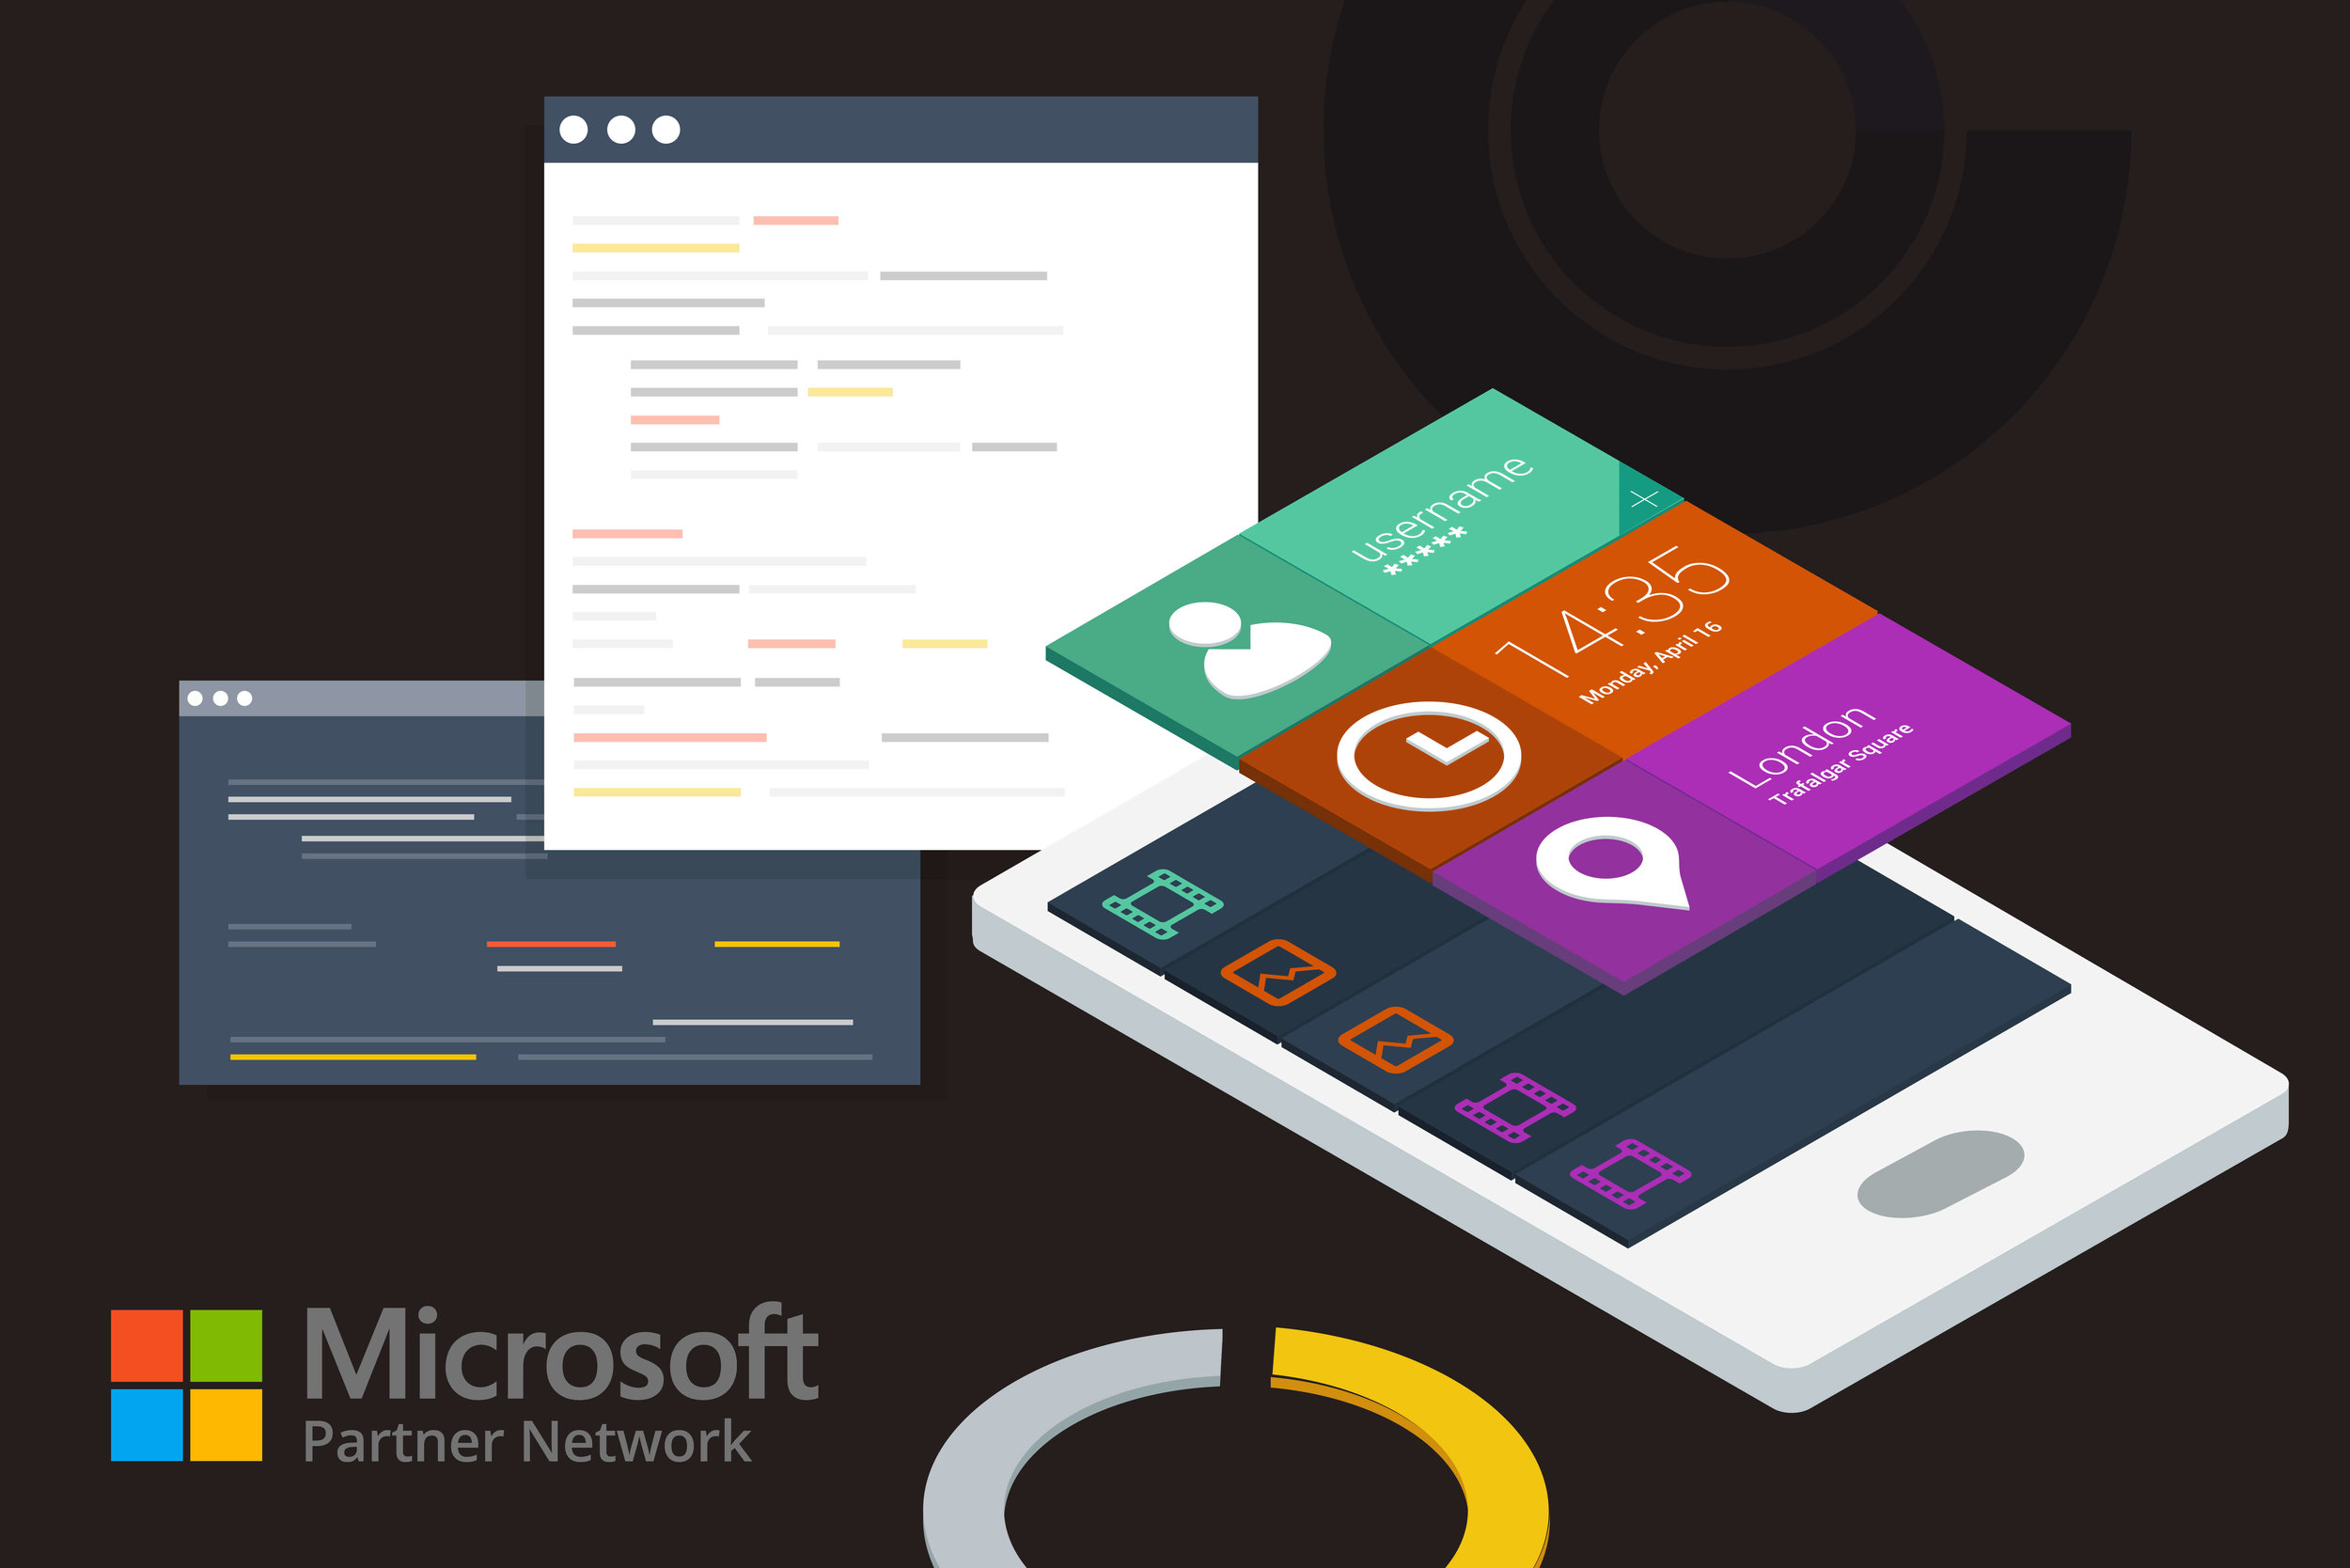 A Microsoft Gold Partner in Application Development - We specialize in .Net development, Microsoft Business Intelligence stack, SharePoint and Microsoft Cloud Technologies. We build mobile apps using both native iOS and Android development as well as NativeScript. With over ten years of experience, we are passionate about understanding your brand and delivering the best industry solutions and value for your business.As part of the Microsoft Partner Network, we have earned the Gold Partner status in Application Development.